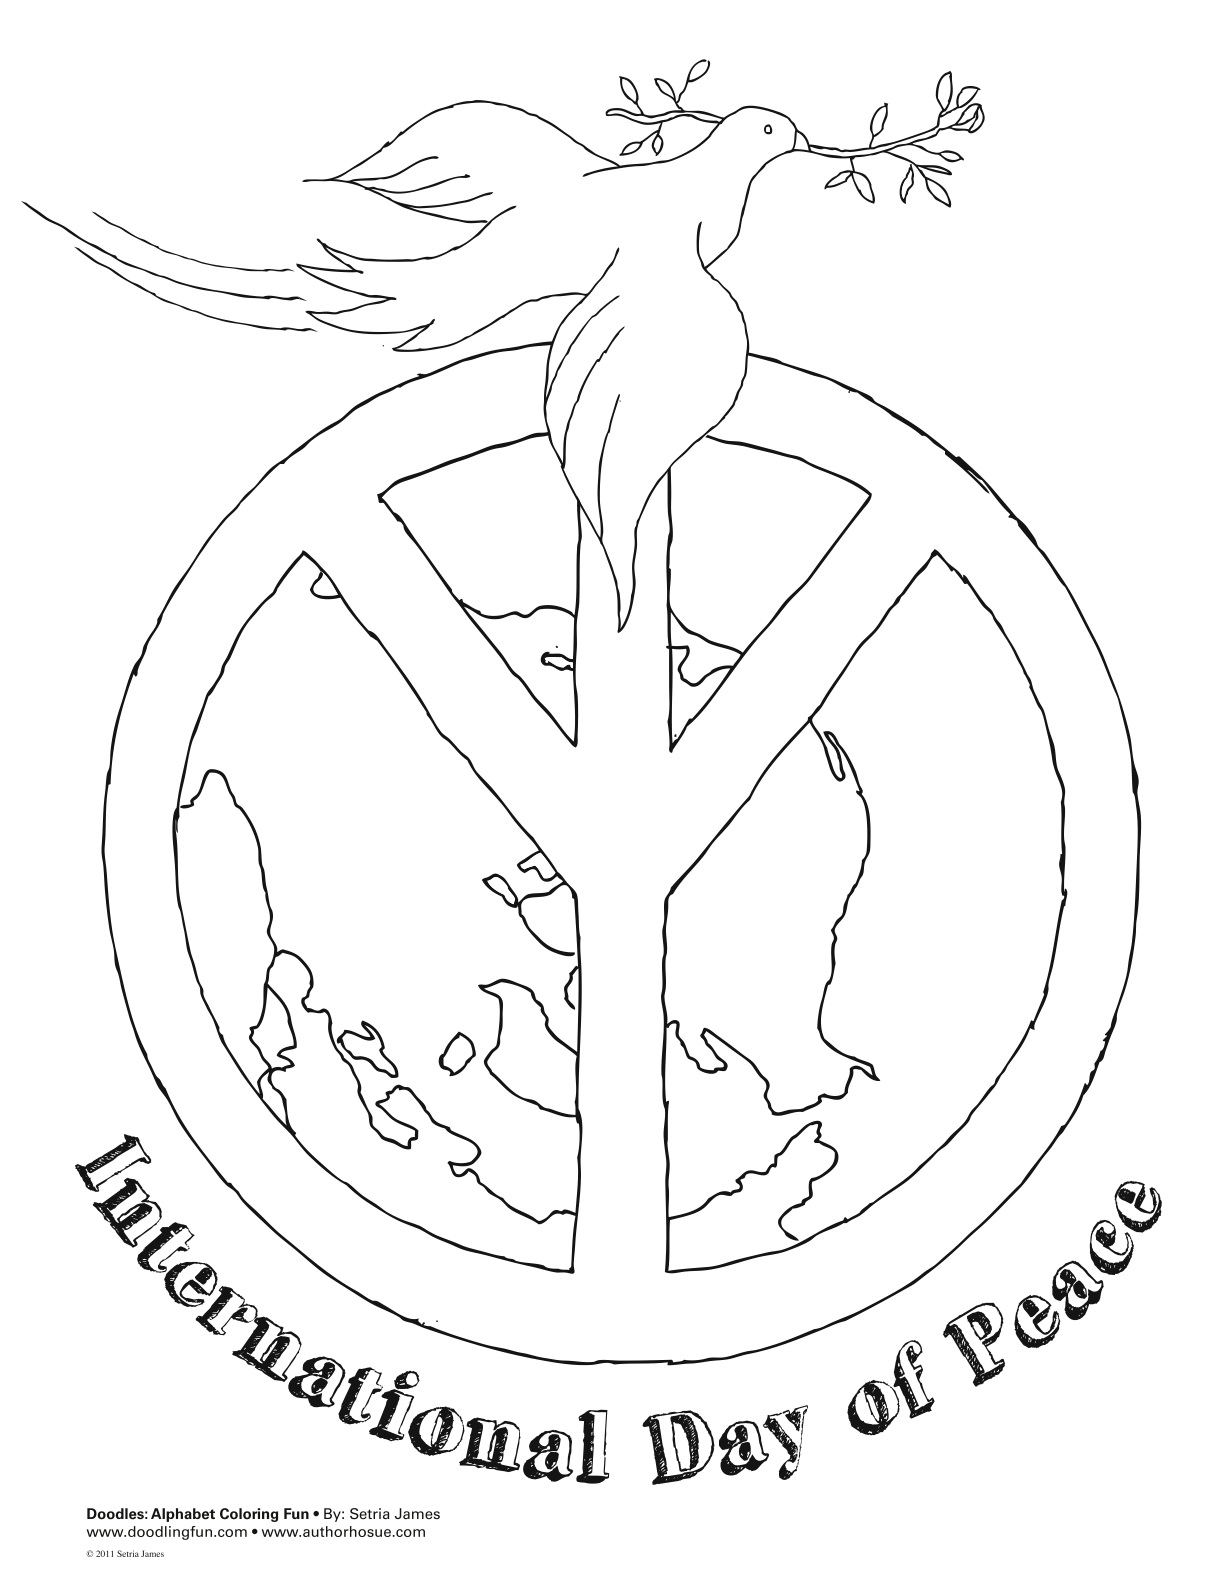 100 shield coloring page clipart round sword and shield ctr